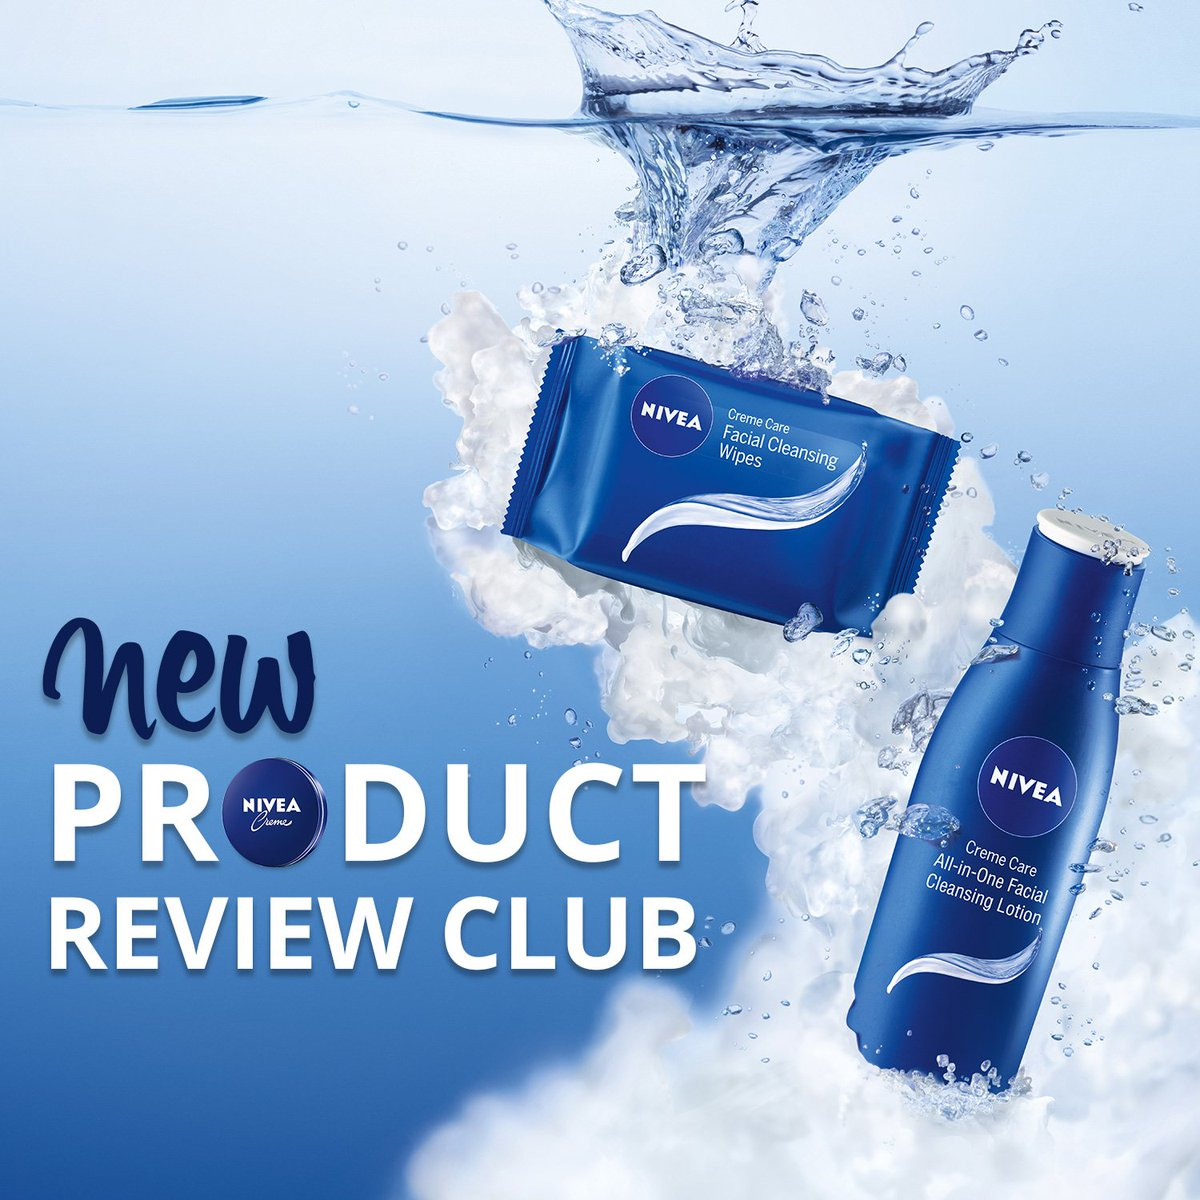 Would you like to try new cleansers? Apply for 1 of 1,000 spots to try #NIVEAMustHaves https://t.co/QWcecByzGM https://t.co/cmEdUOn7XM